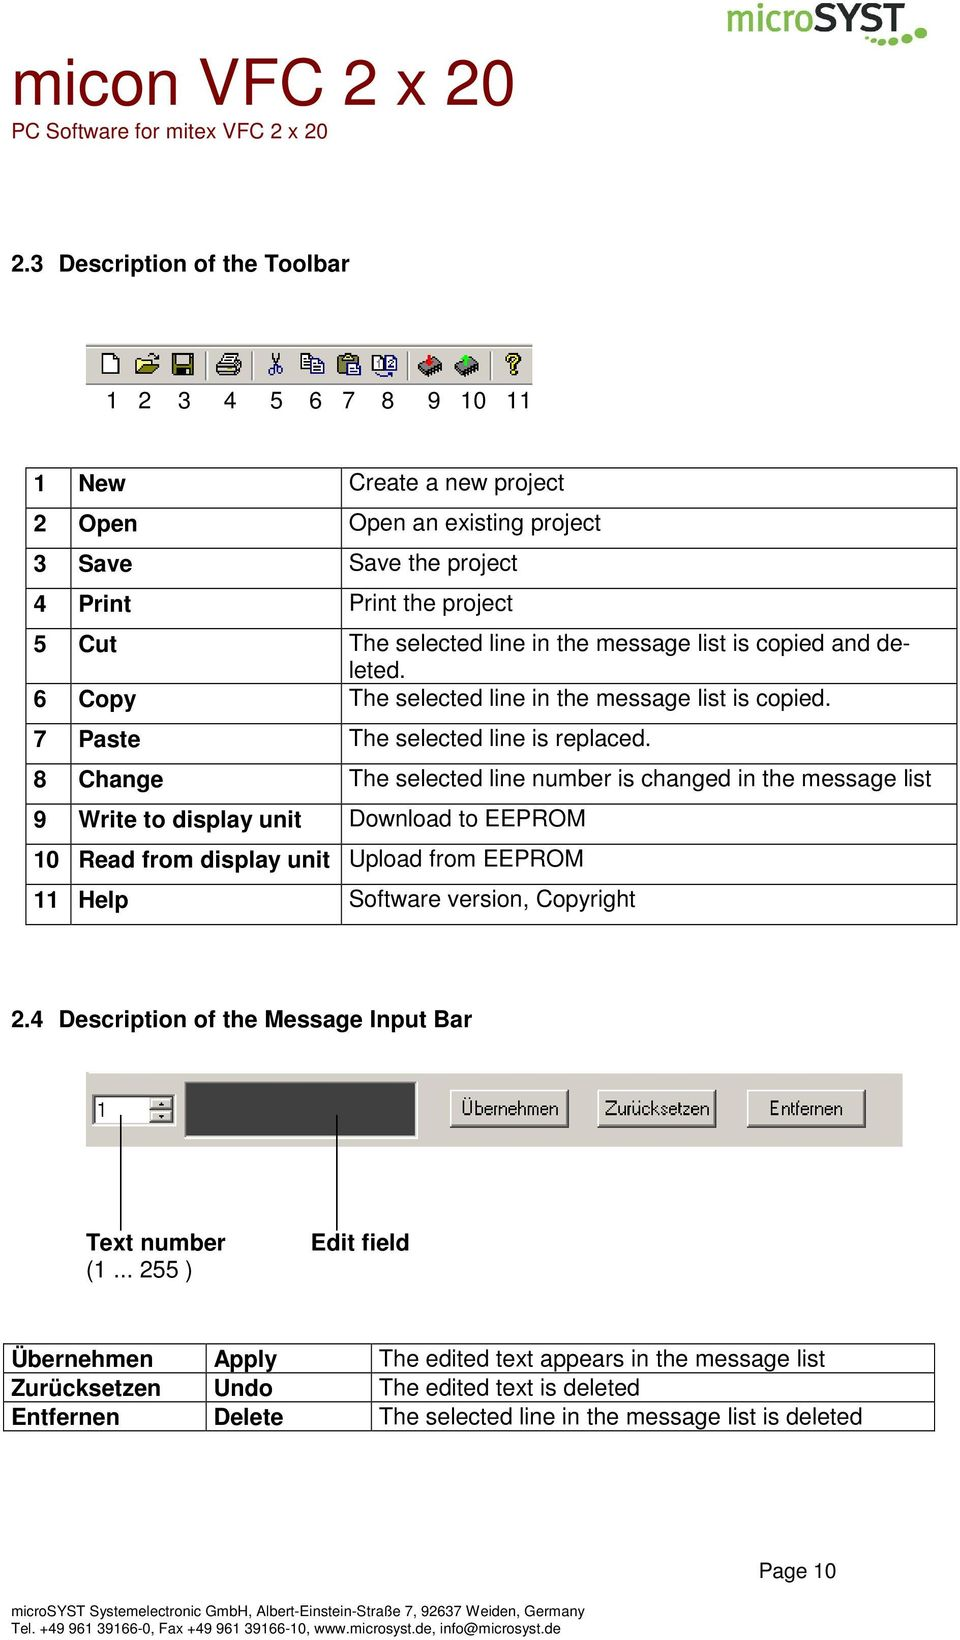 8 Change The selected line number is changed in the message list 9 Write to display unit Download to EEPROM 10 Read from display unit Upload from EEPROM 11 Help Software version, Copyright 2.